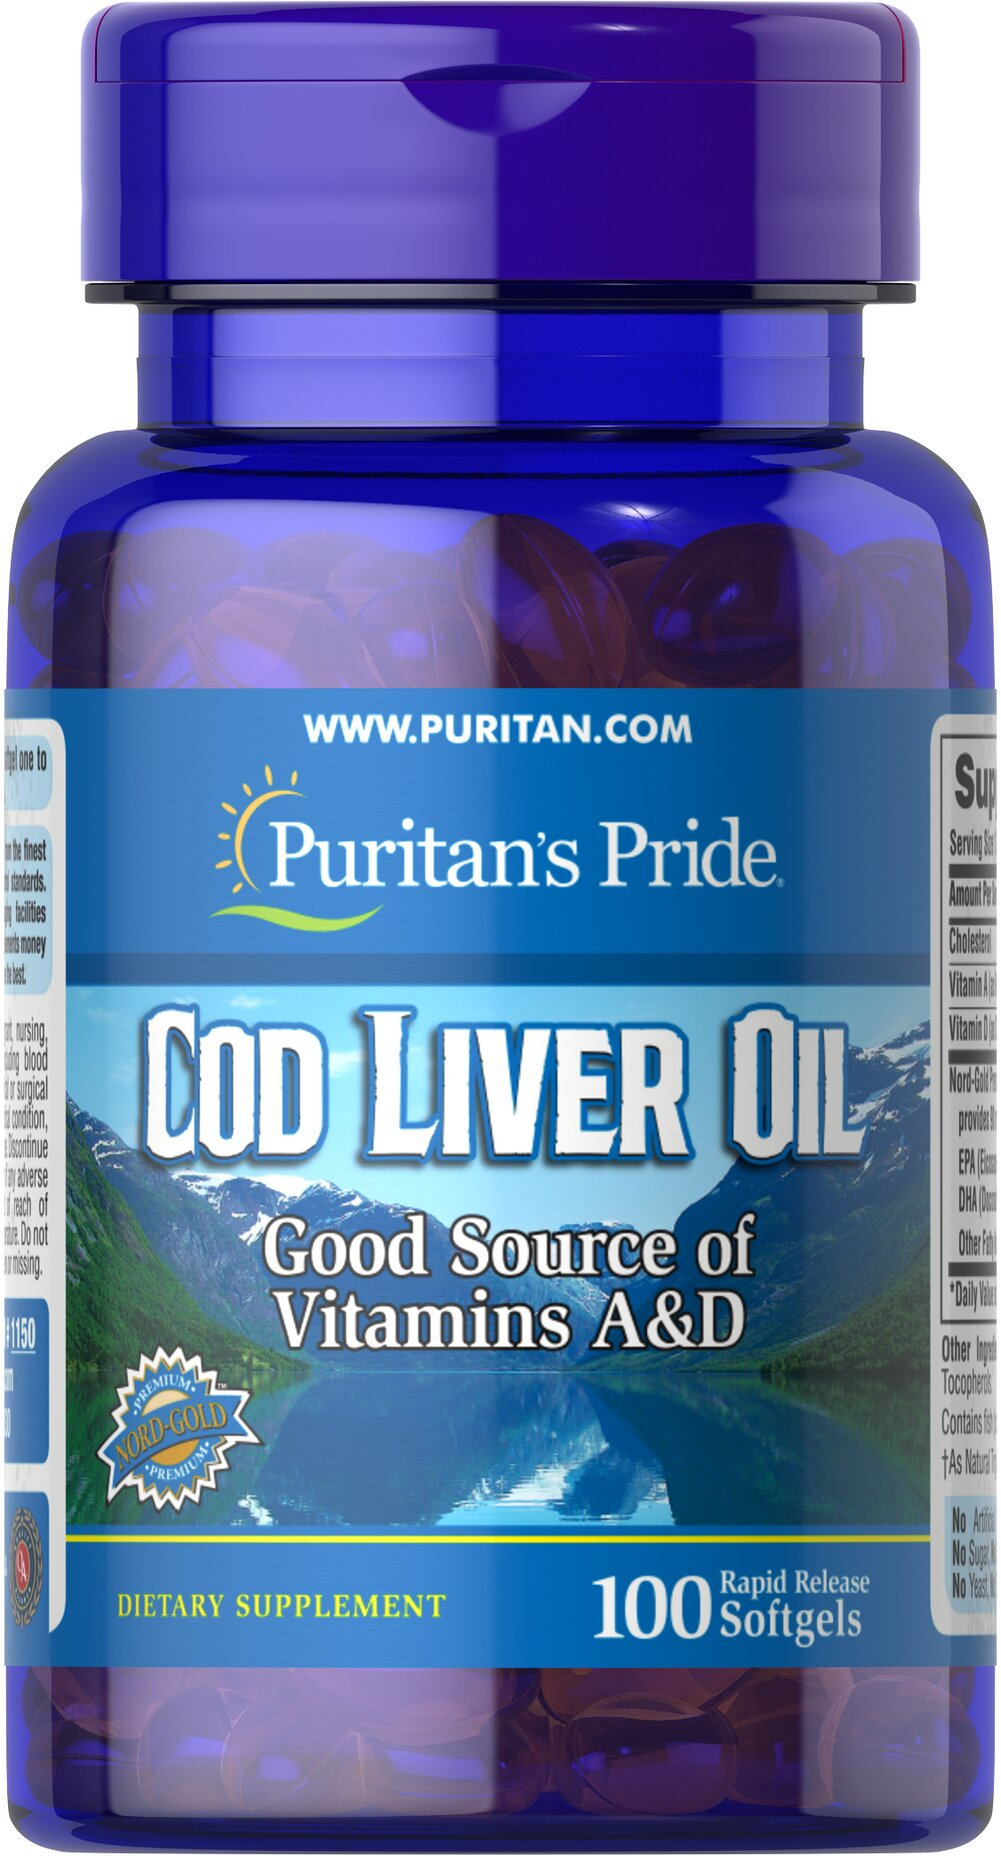 Norwegian Cod Liver Oil 415 mg <p>Norwegian cod has traditionally been one of the most popular natural sources of  <strong>both Vitamins A & D</strong>. </p><p>Vitamin D helps maintain healthy bones in adults. ** </p><p>Vitamin A helps maintain eye health. **</p><p>Vitamins A & D help regulate the immune system.**</p> 100 Softgels 415 mg $6.49